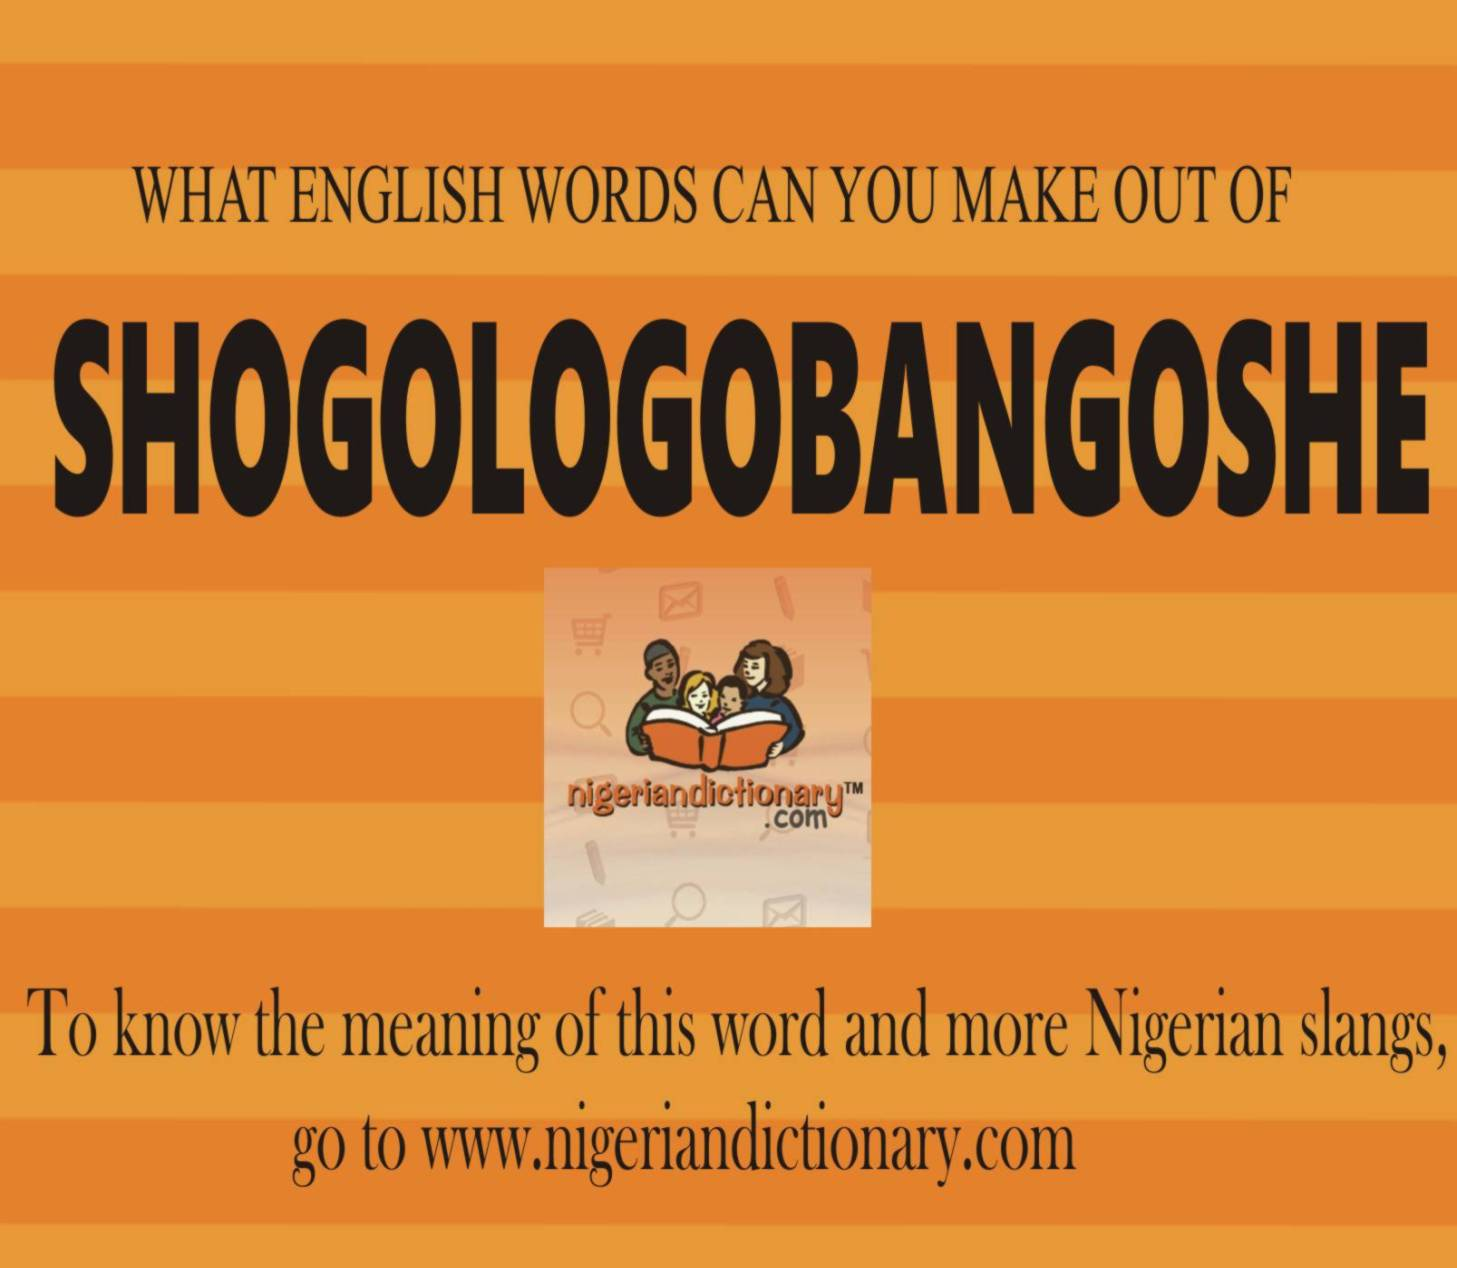 Nigerian slang words